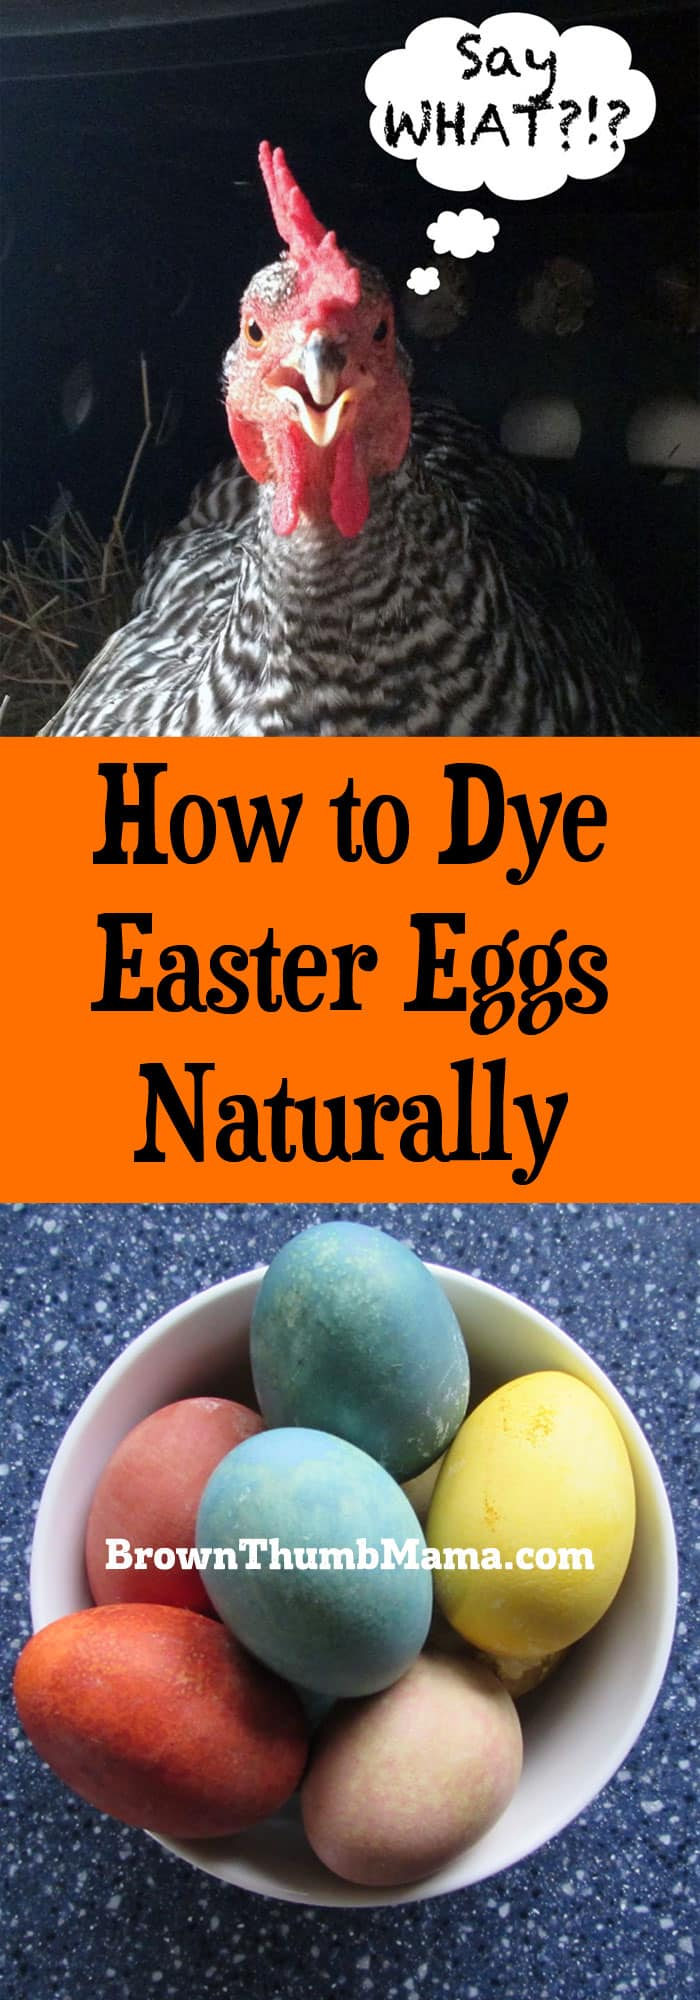 How to dye easter eggs naturally brown thumb mama How to color easter eggs